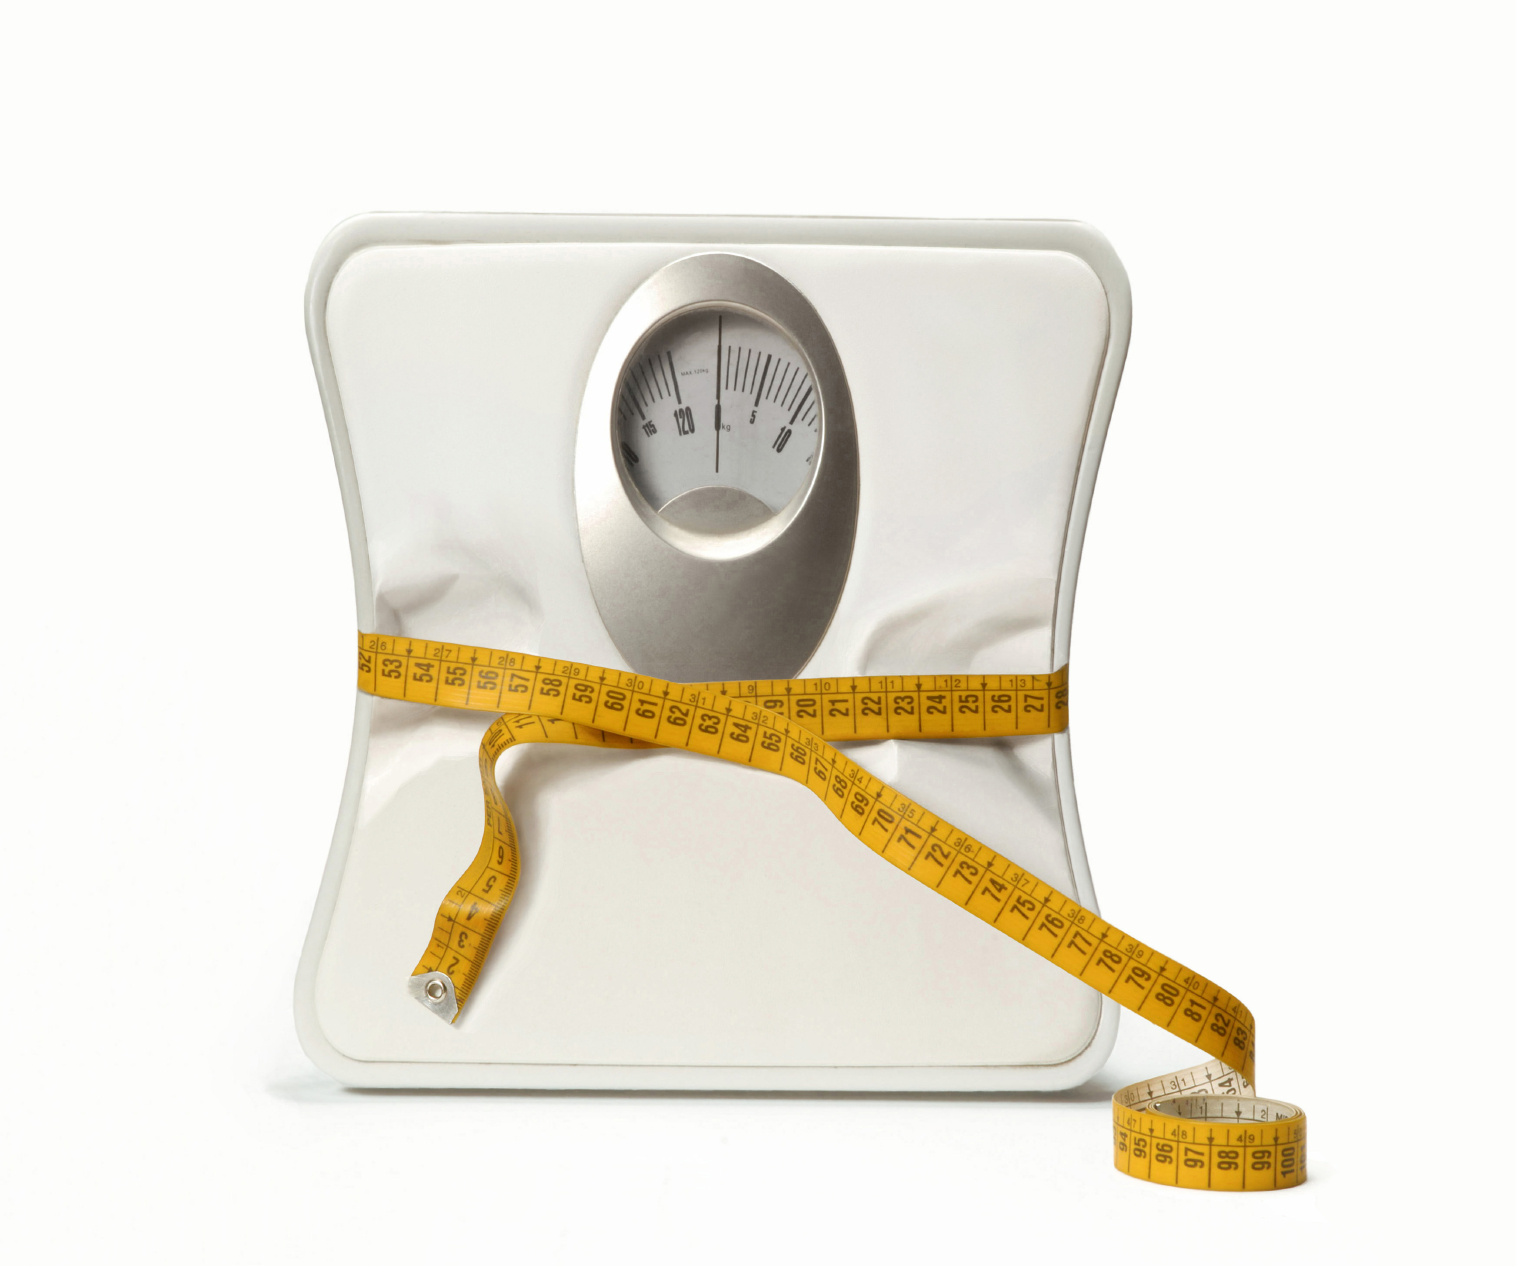 6 Ways To Shed The Holiday Weight